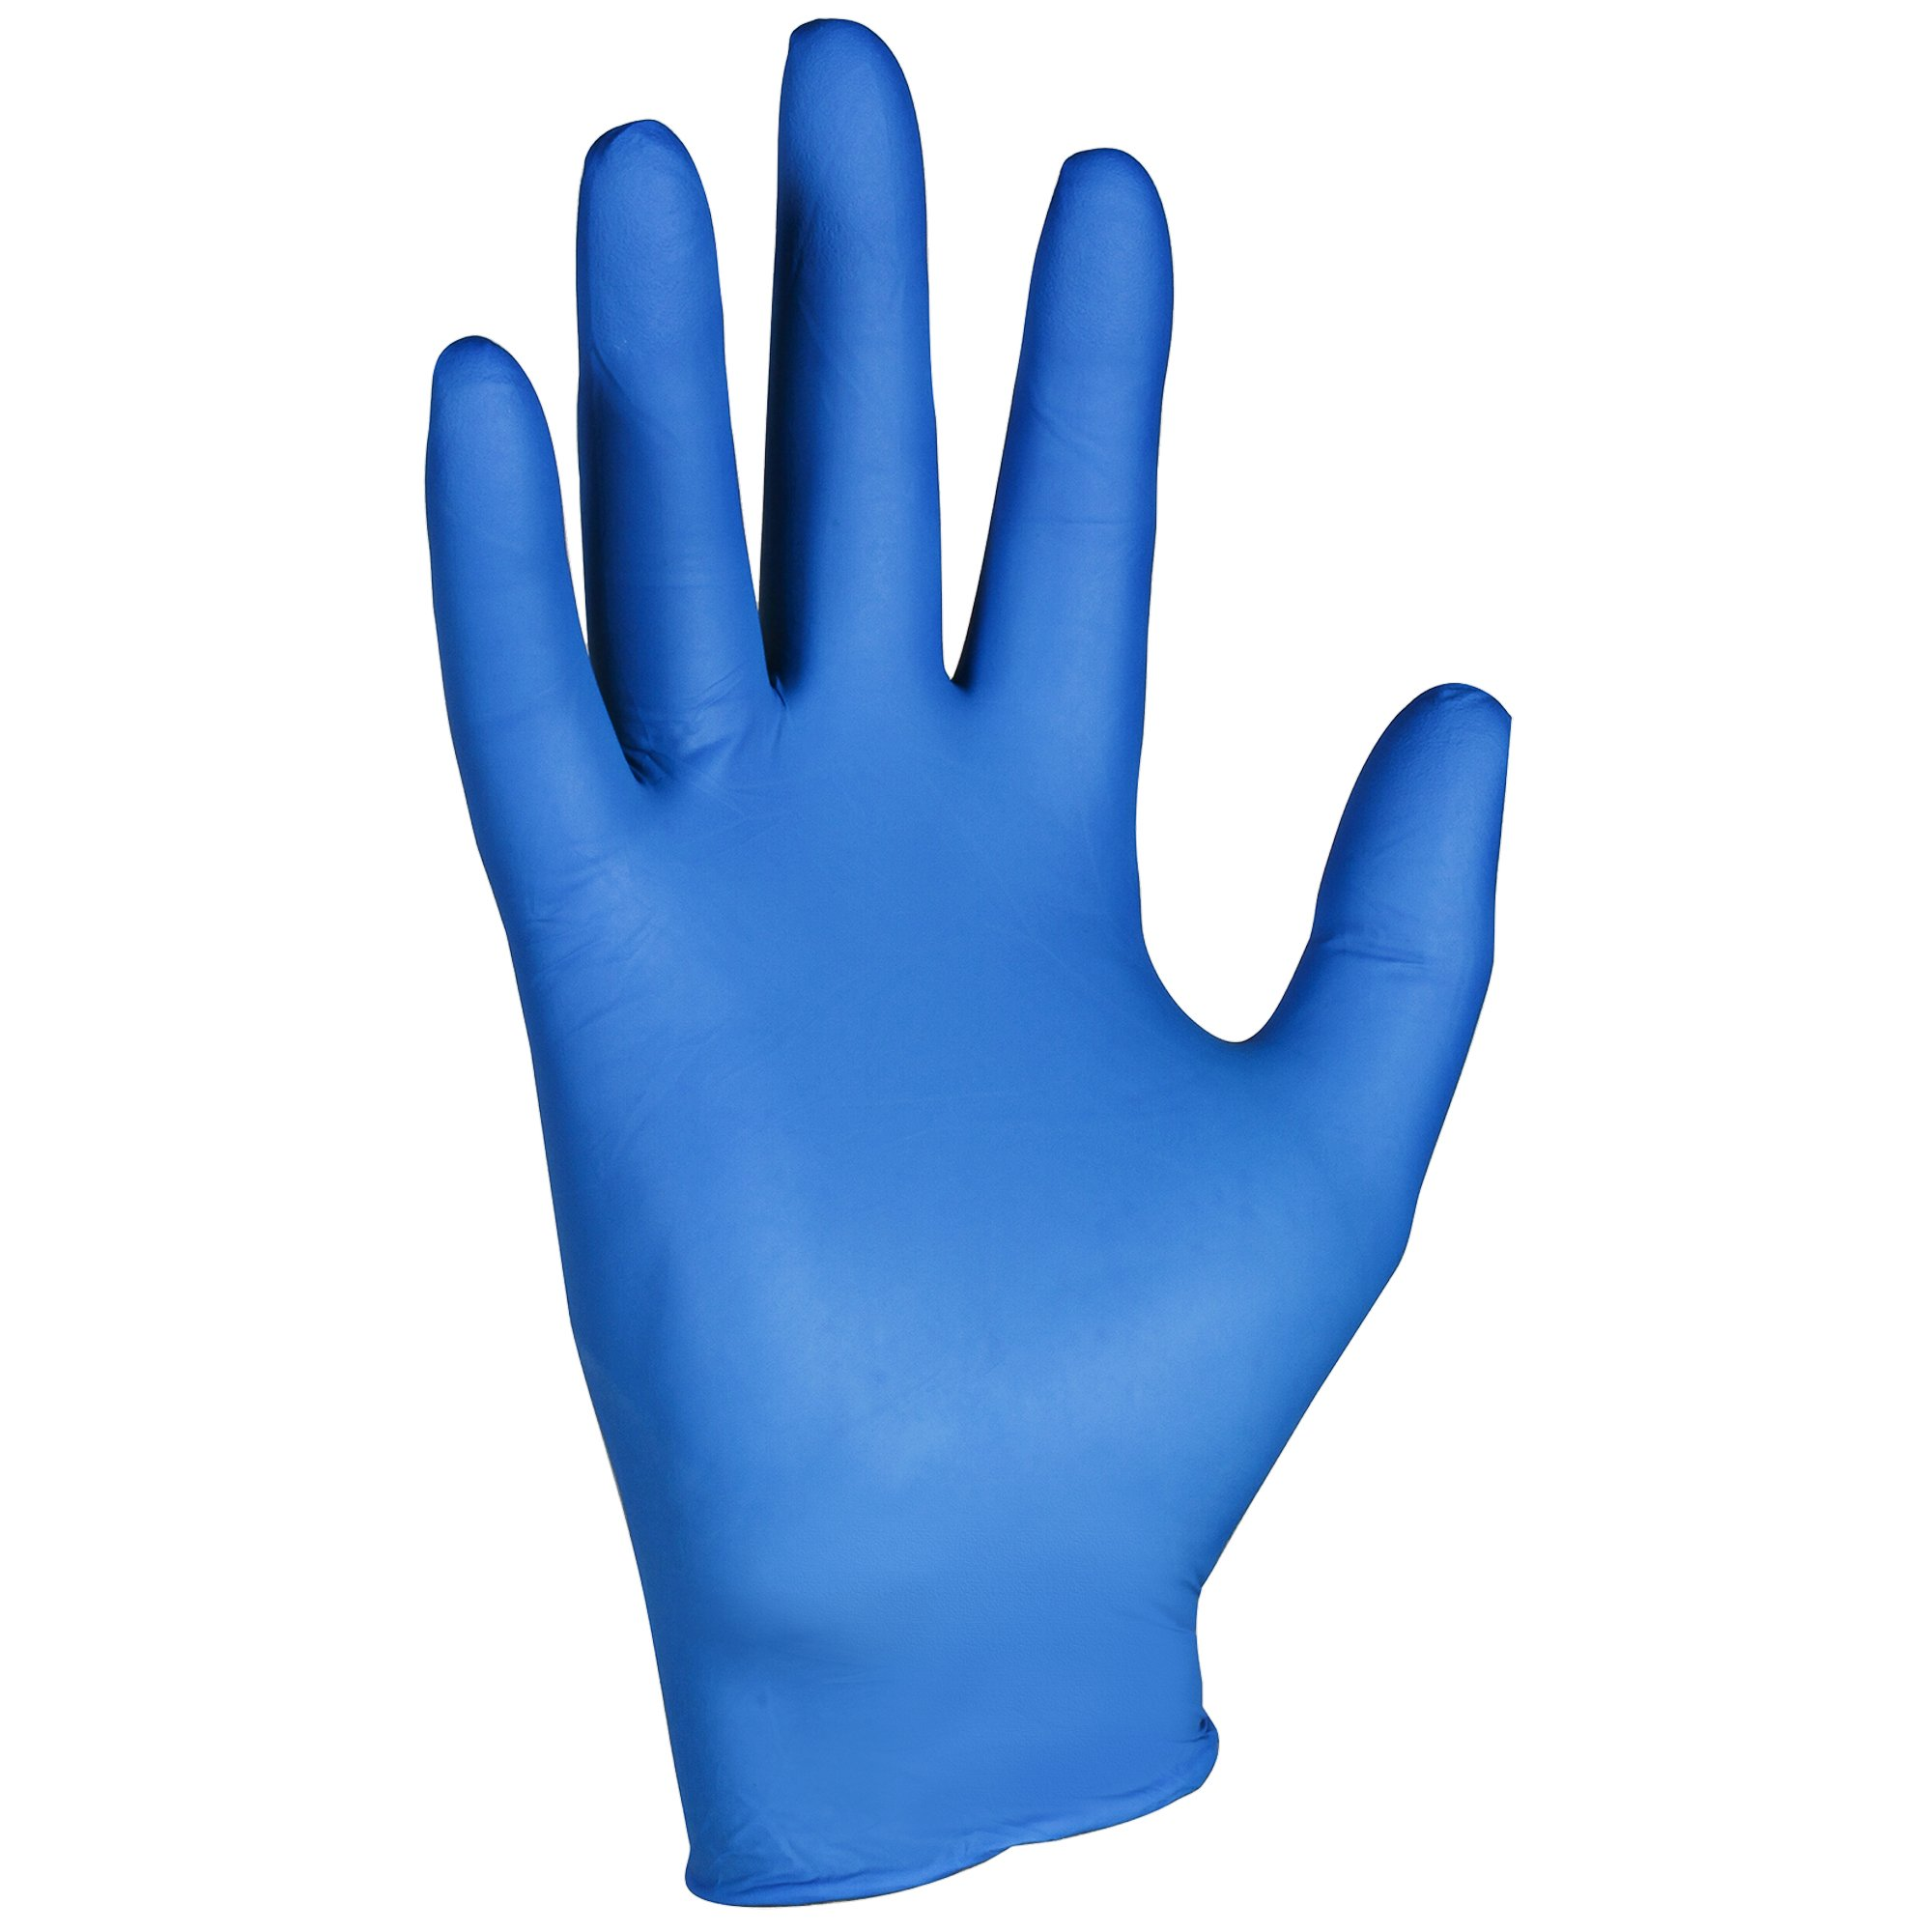 Kleenguard G10 Arctic Blue Nitrile Gloves (90096), Ambidextrous, Powder Free, Small (Sml), 200 gloves/box